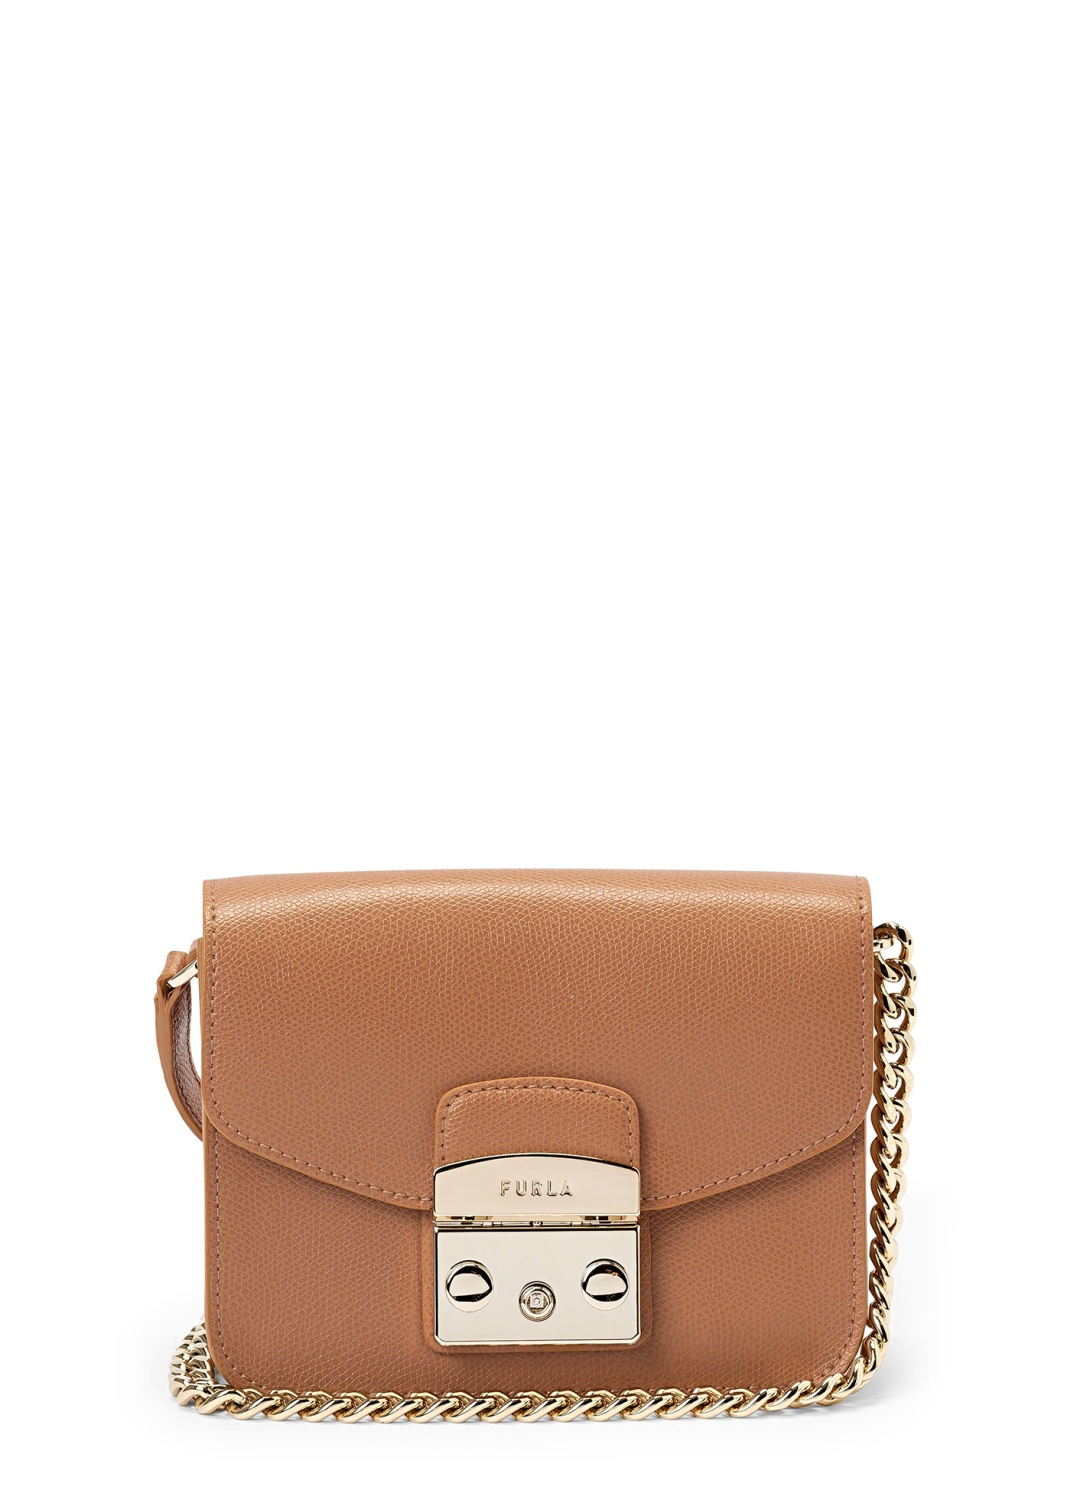 METROPOLIS MINI CROSSBODY image number 0